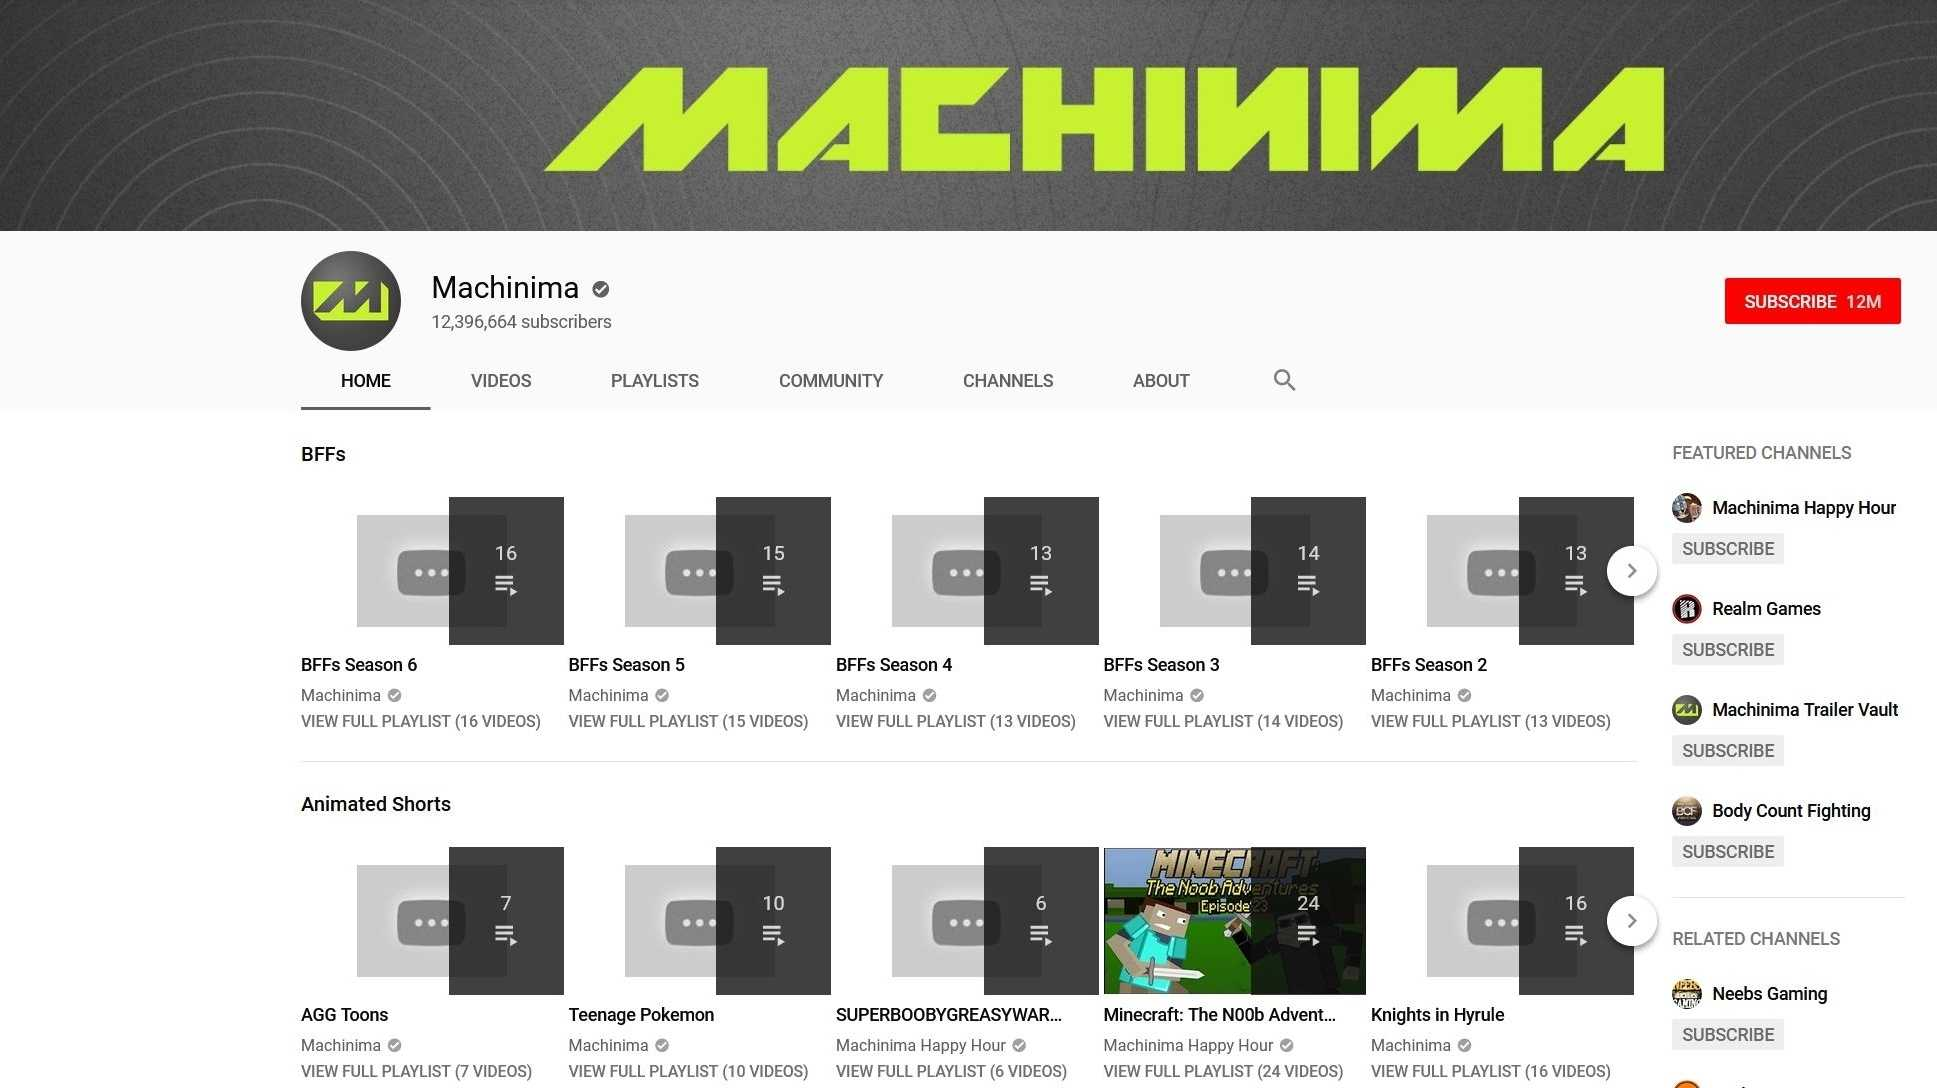 #RIPMachinima: Legendärer Youtube-Kanal entfernt alle Videos